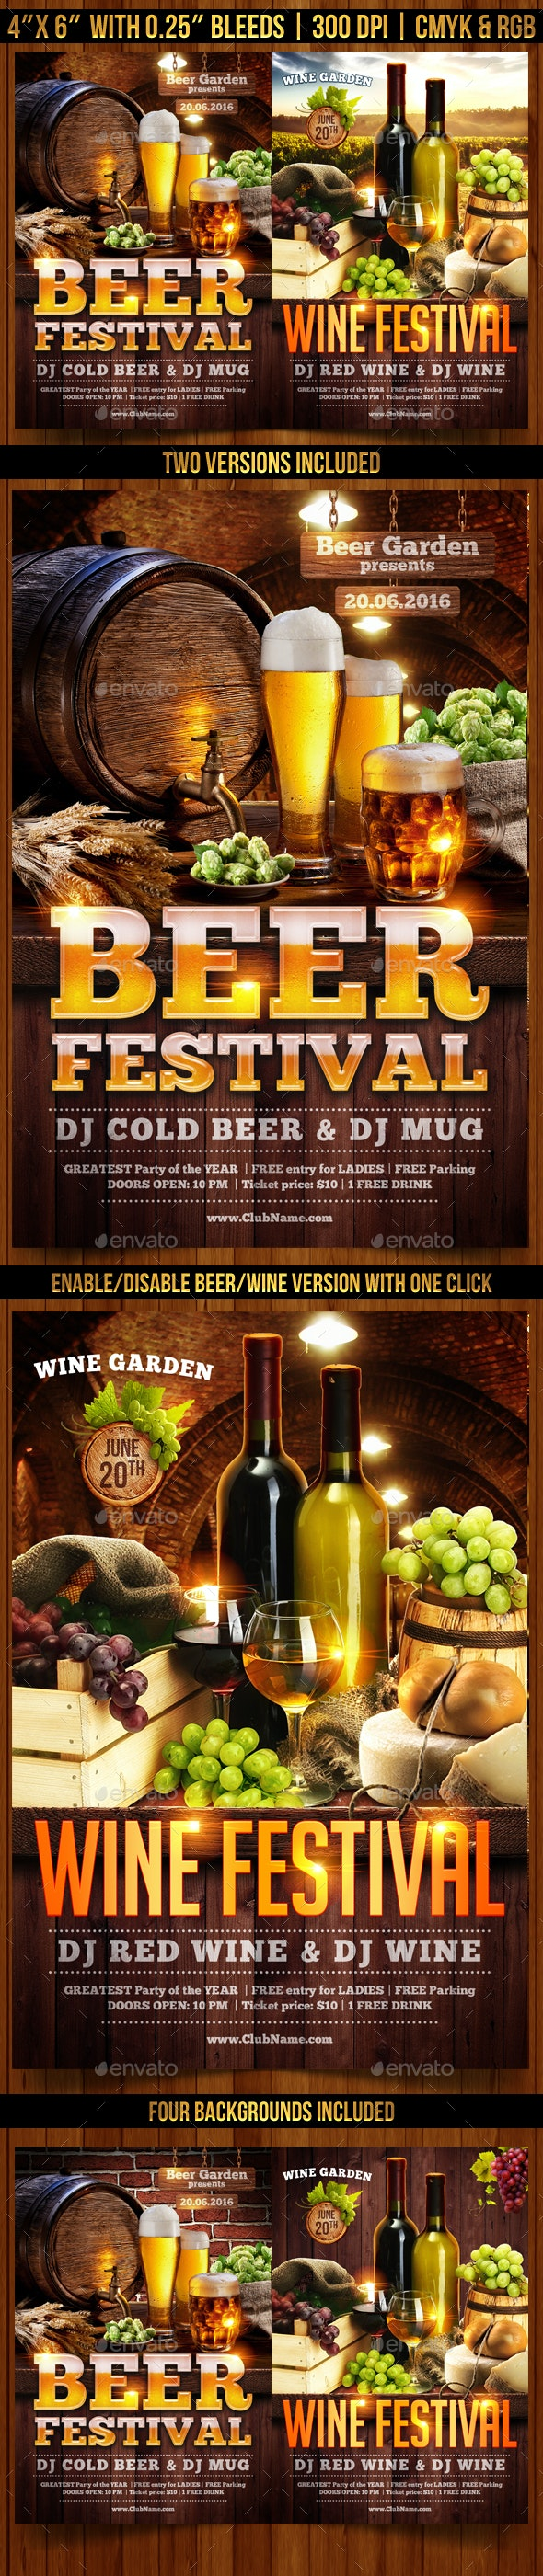 Beer and Wine Festival Flyer Template - Events Flyers